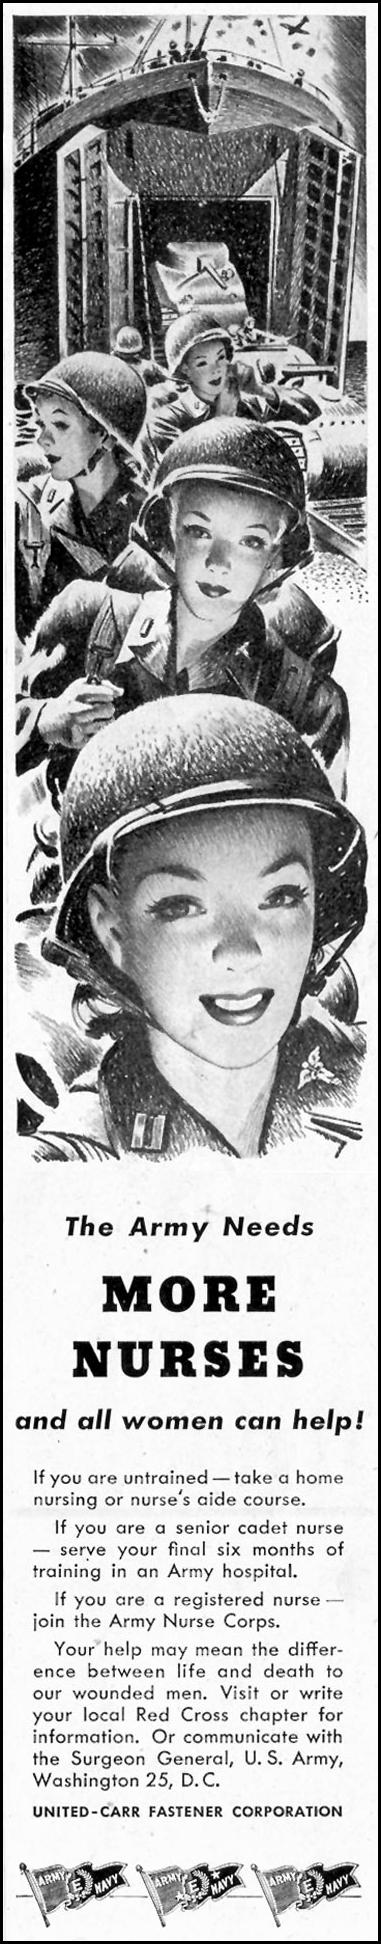 ARMY NURSES SATURDAY EVENING POST 05/19/1945 p. 51